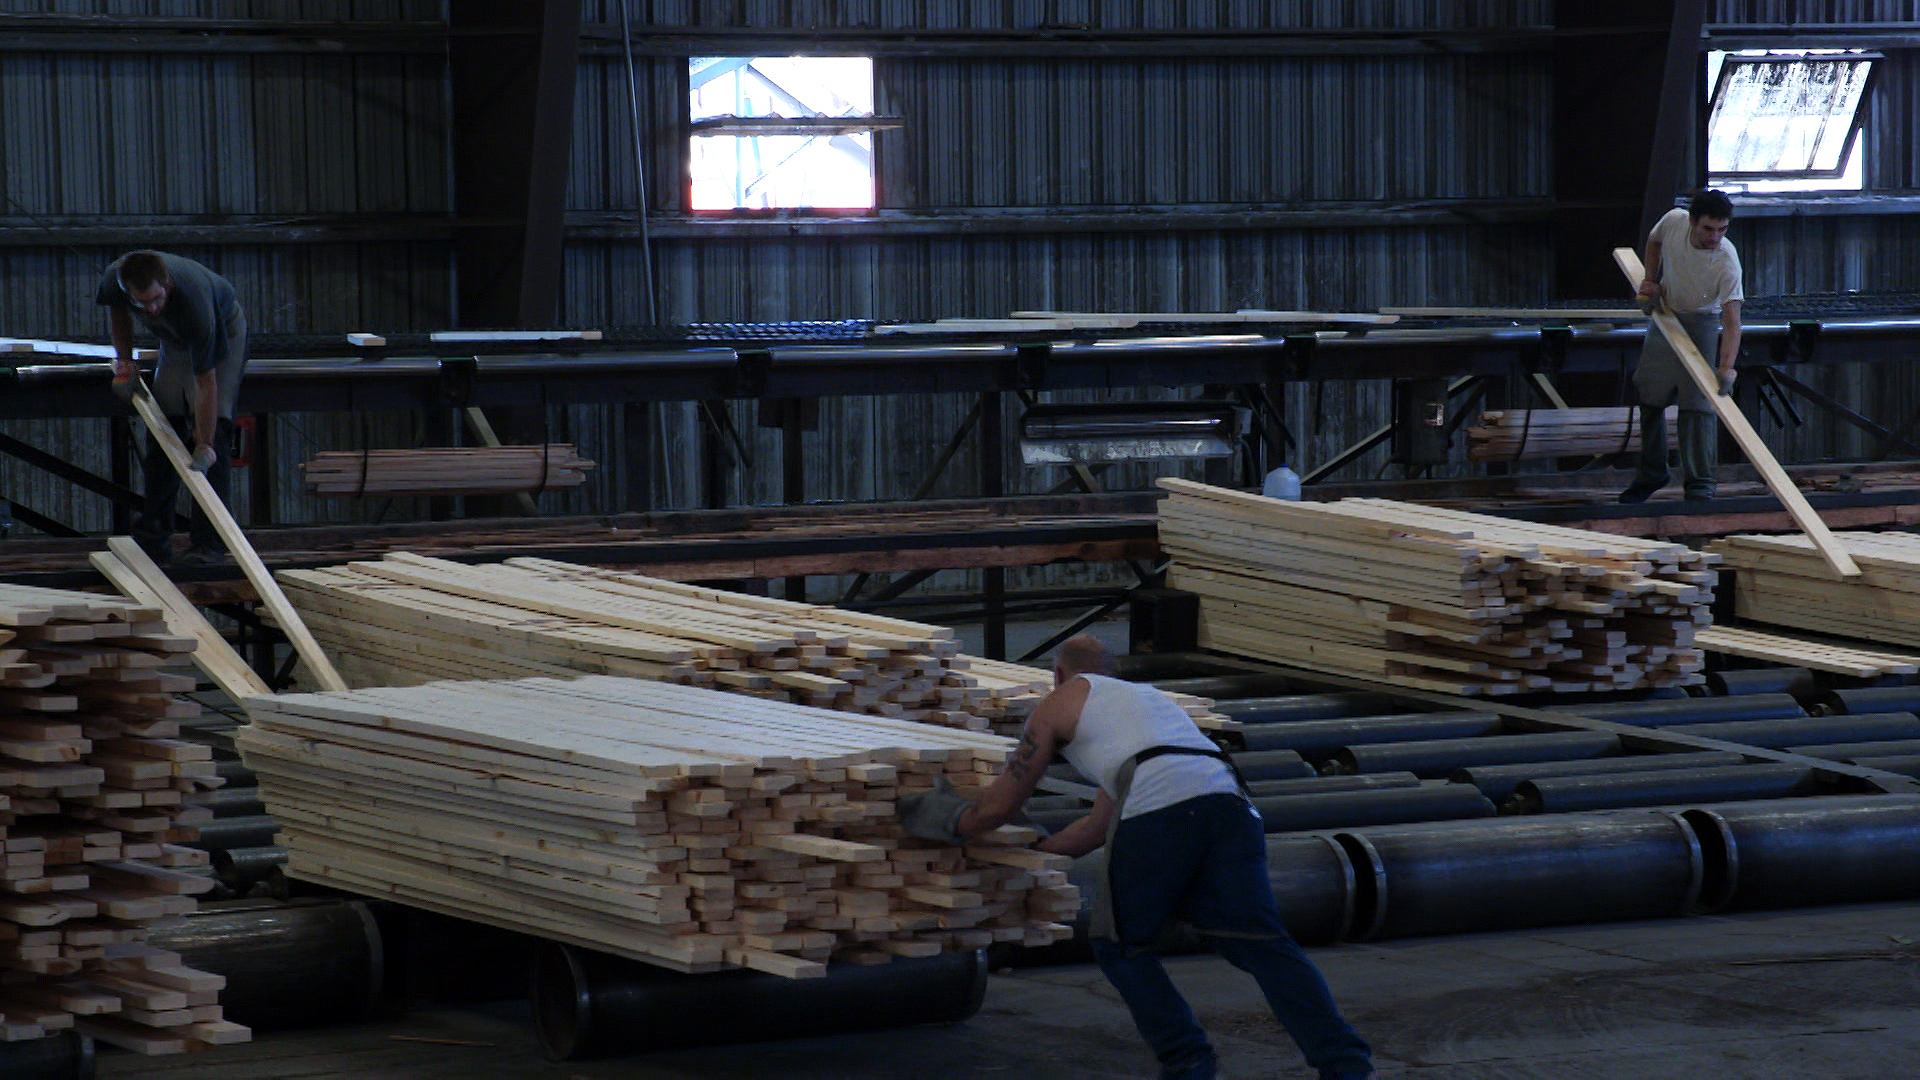 The Malheur Lumber Company in John Day almost closed for a lack of timber supply, until environmentalists and other members of the Blue Mountains Forest Partners stepped in to develop a 10-year stewardship contract that would ensure a sustained supply of timber from the surrounding forests.